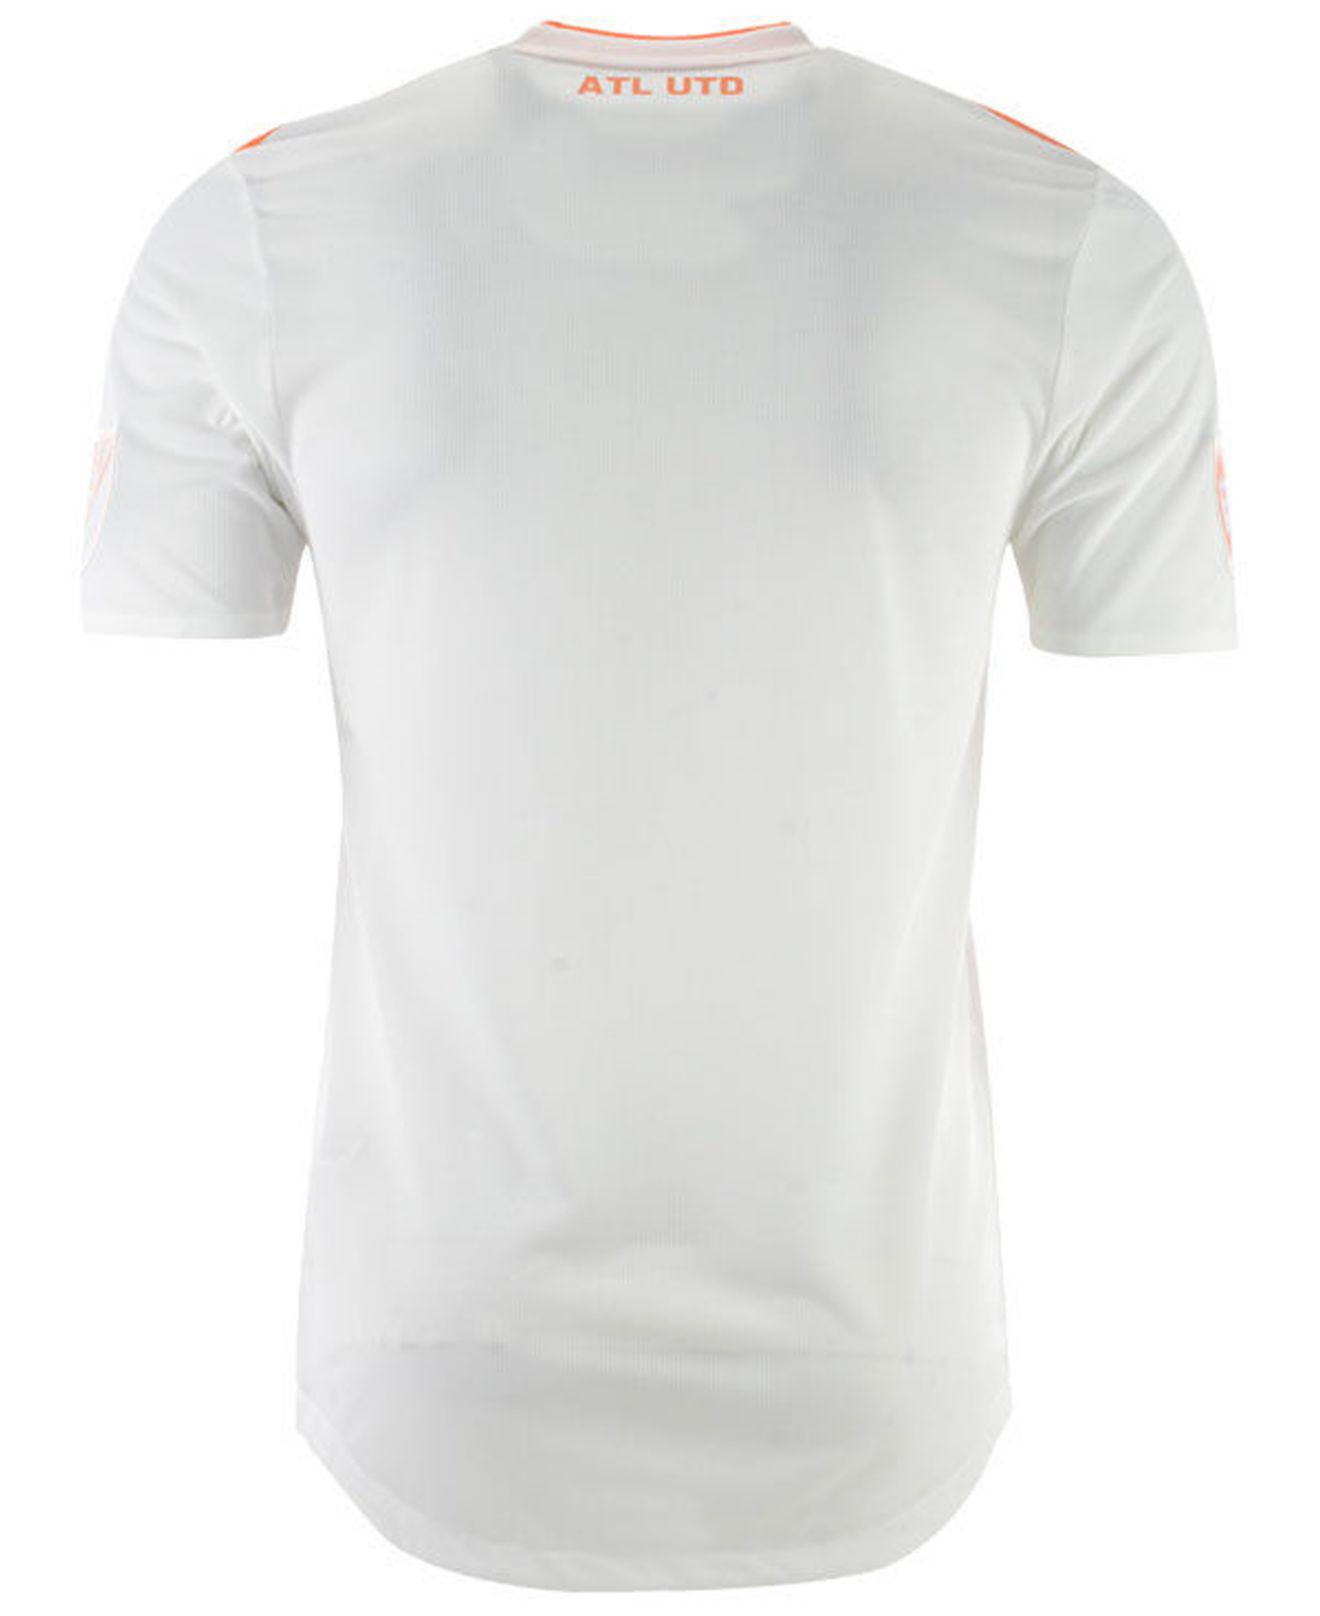 abd405ef662 adidas Atlanta United Fc Secondary Authentic Jersey in White for Men - Lyst